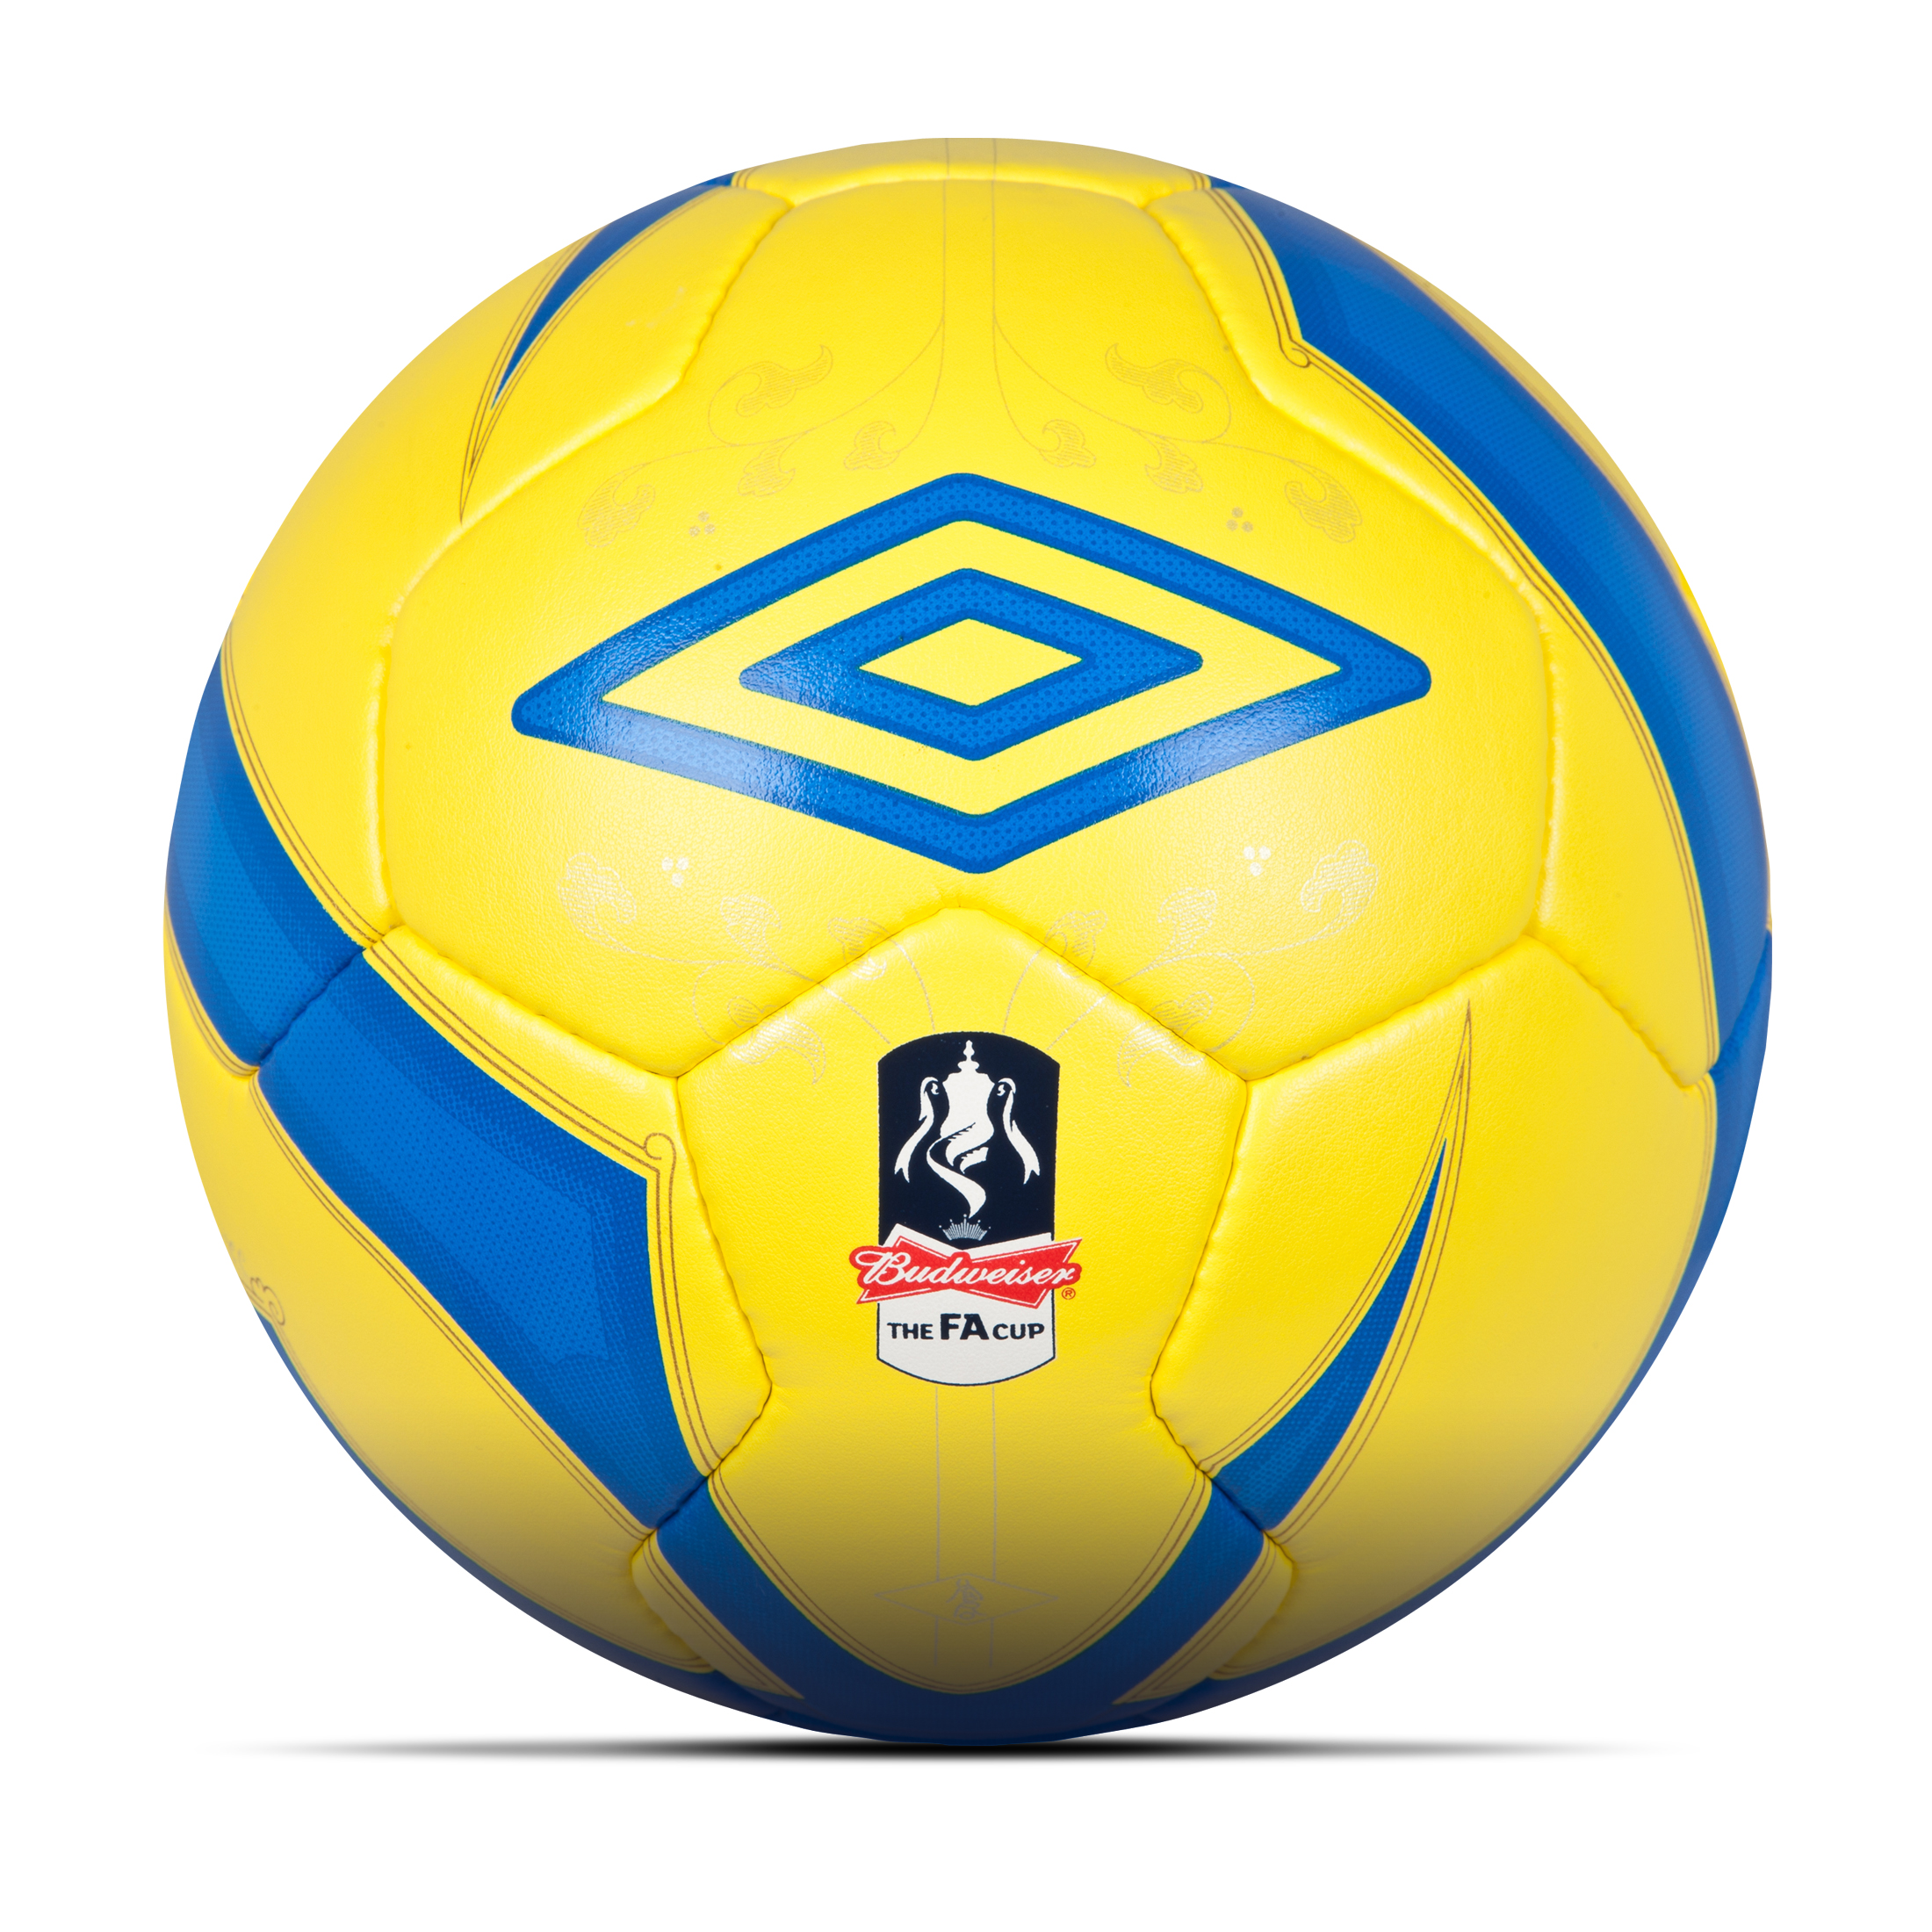 Umbro Neo Pro 2 FA Cup 2012/13 Official Match Ball - Yellow/Princess Blue/Gold